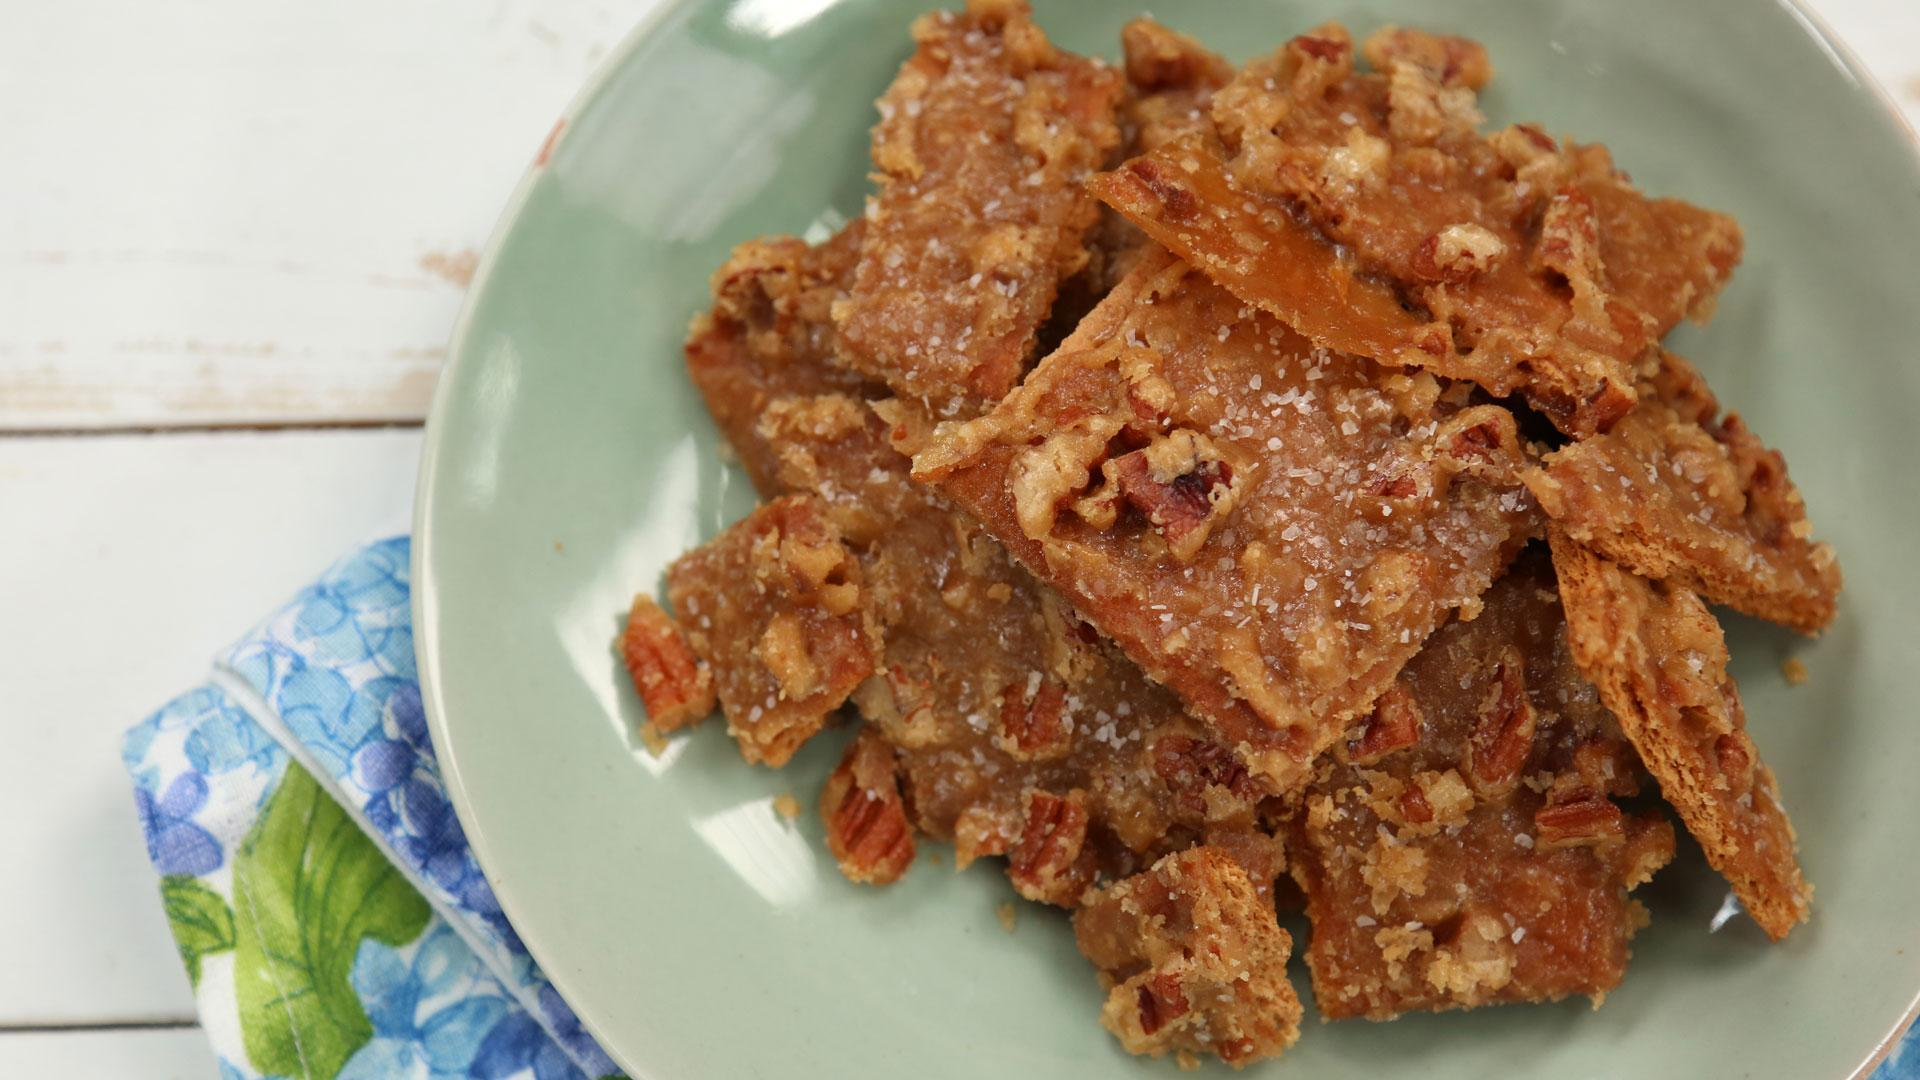 How to Make Salted Caramel-Pecan Bars